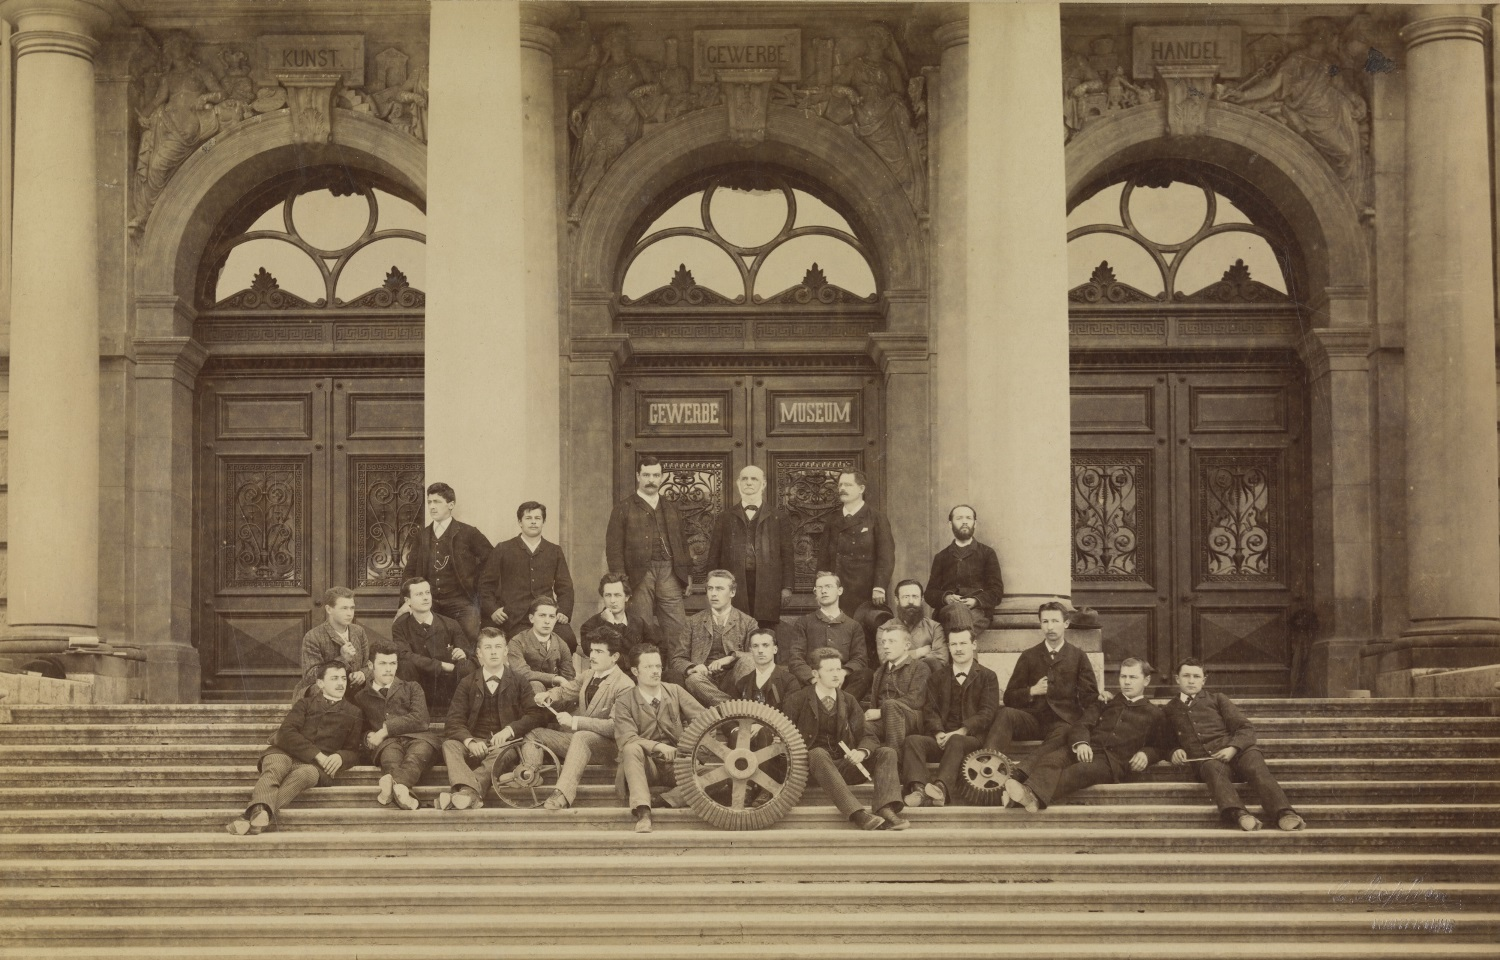 Graduating class, Mechanical Engineering 1892